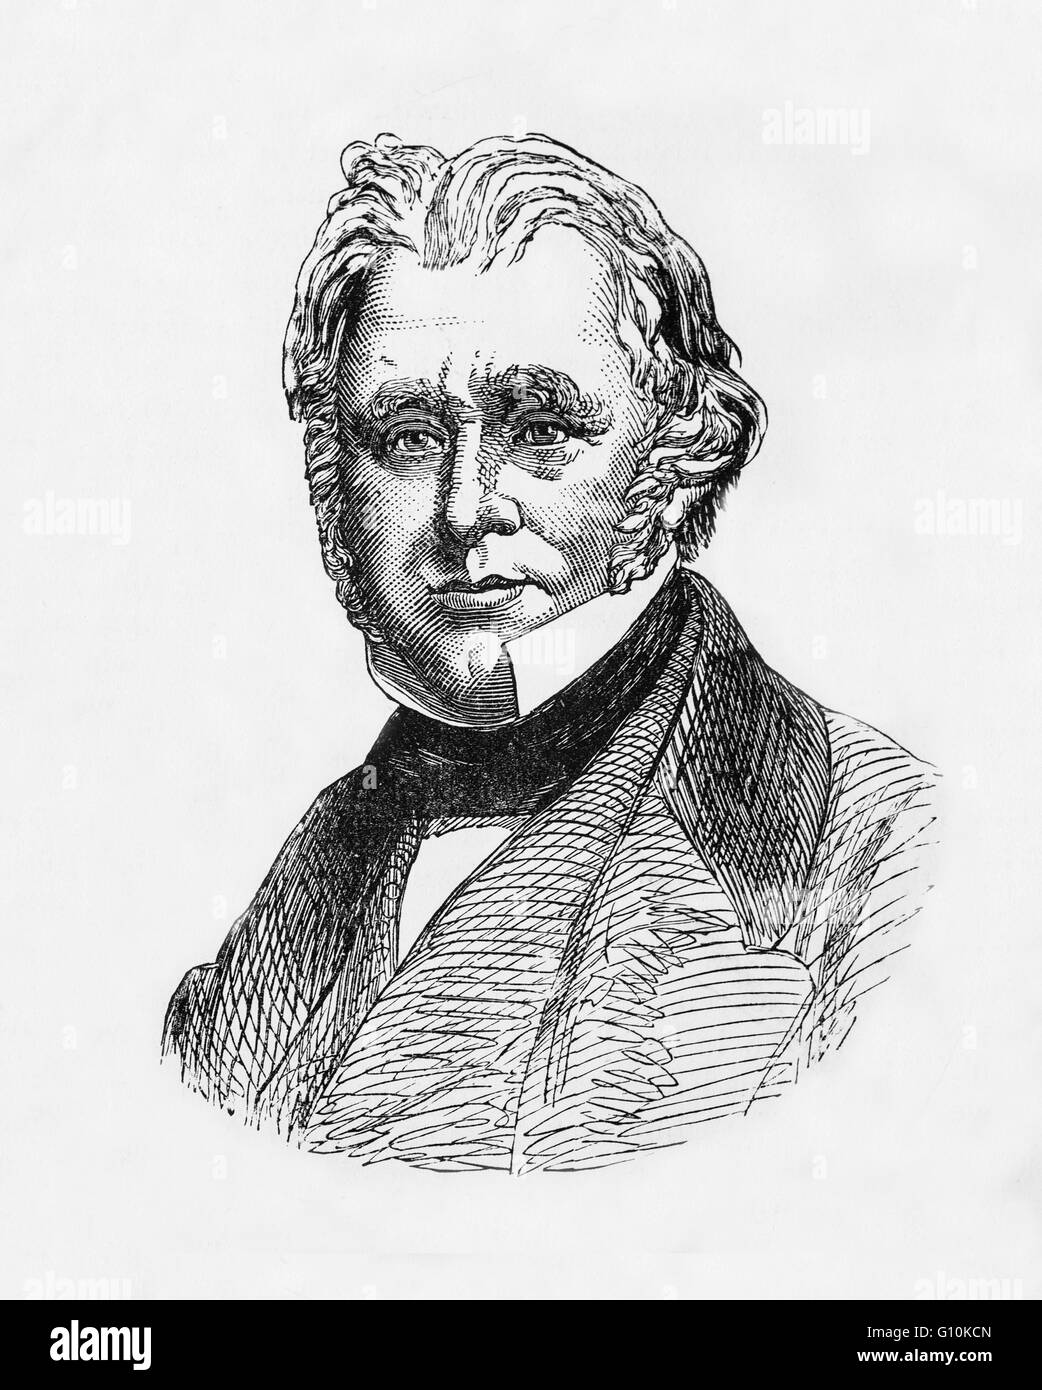 Thomas Babington  Macaulay,(1800 – 1859)  son of a Scottish Highlander,  who became a colonial governor and abolitionist. - Stock Image